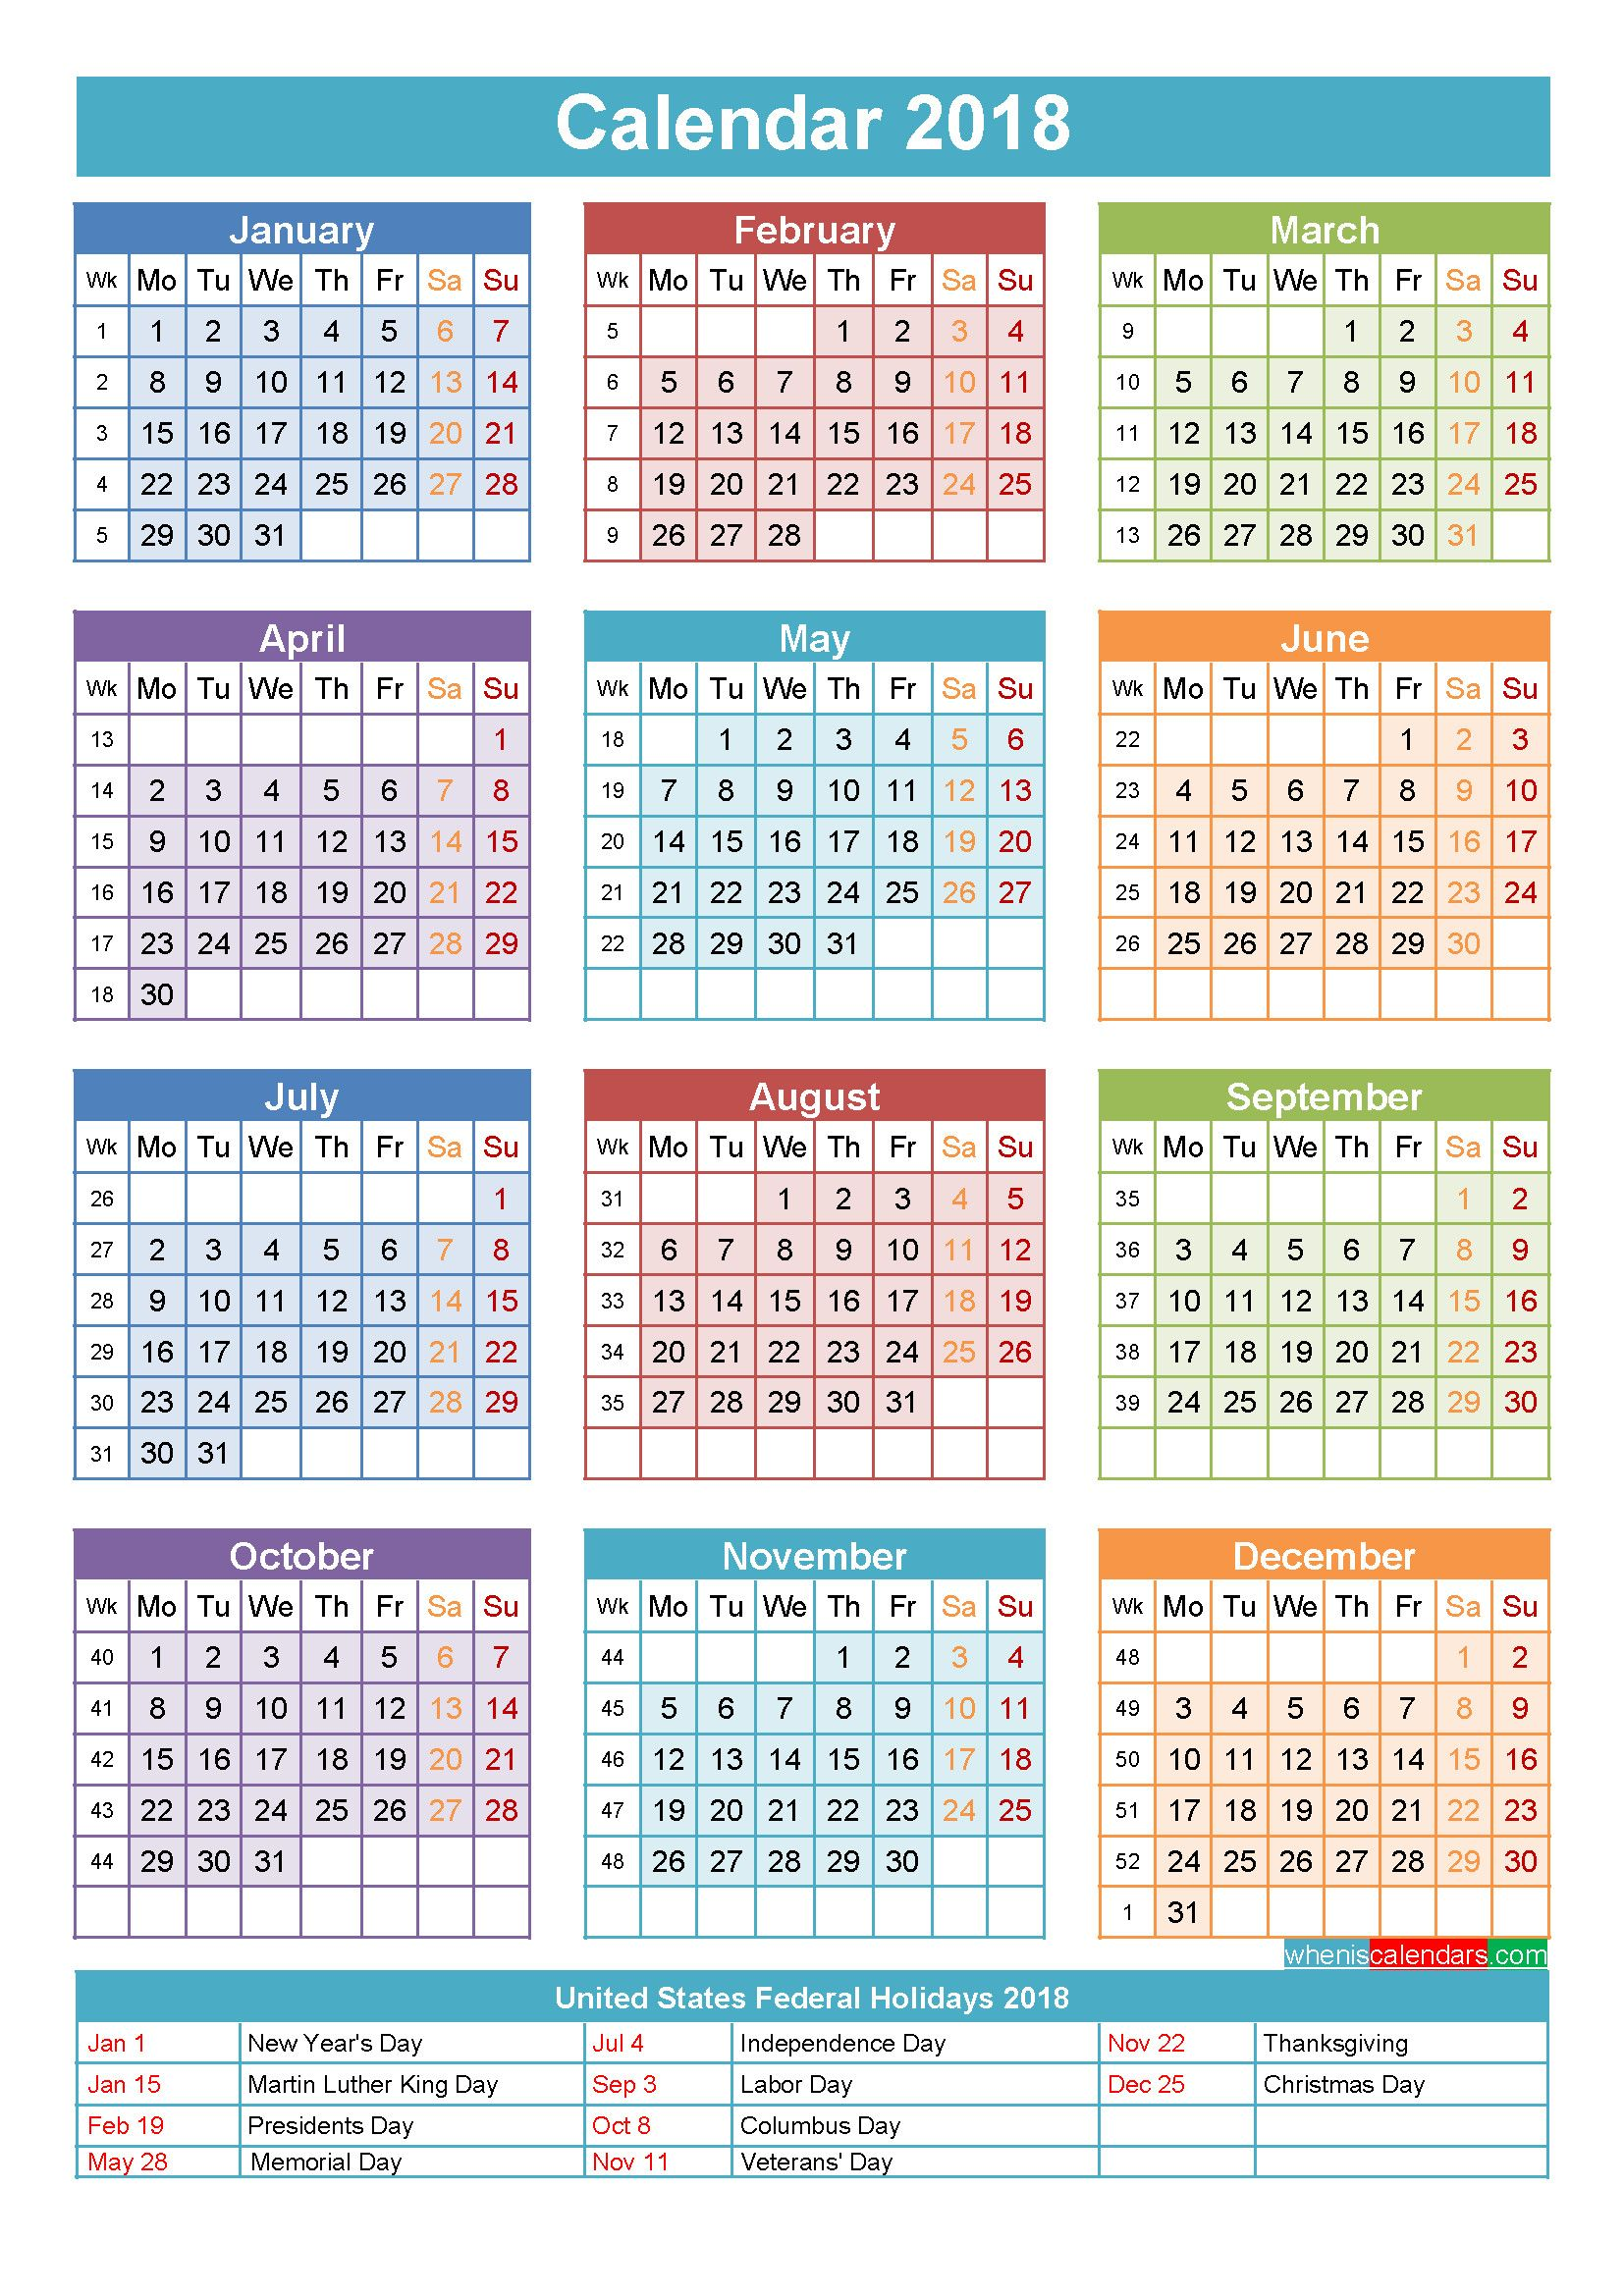 February 2018 Wallpaper Calendar 63 Images Yearly Calendar Template Printable Yearly Calendar Calendar Printables